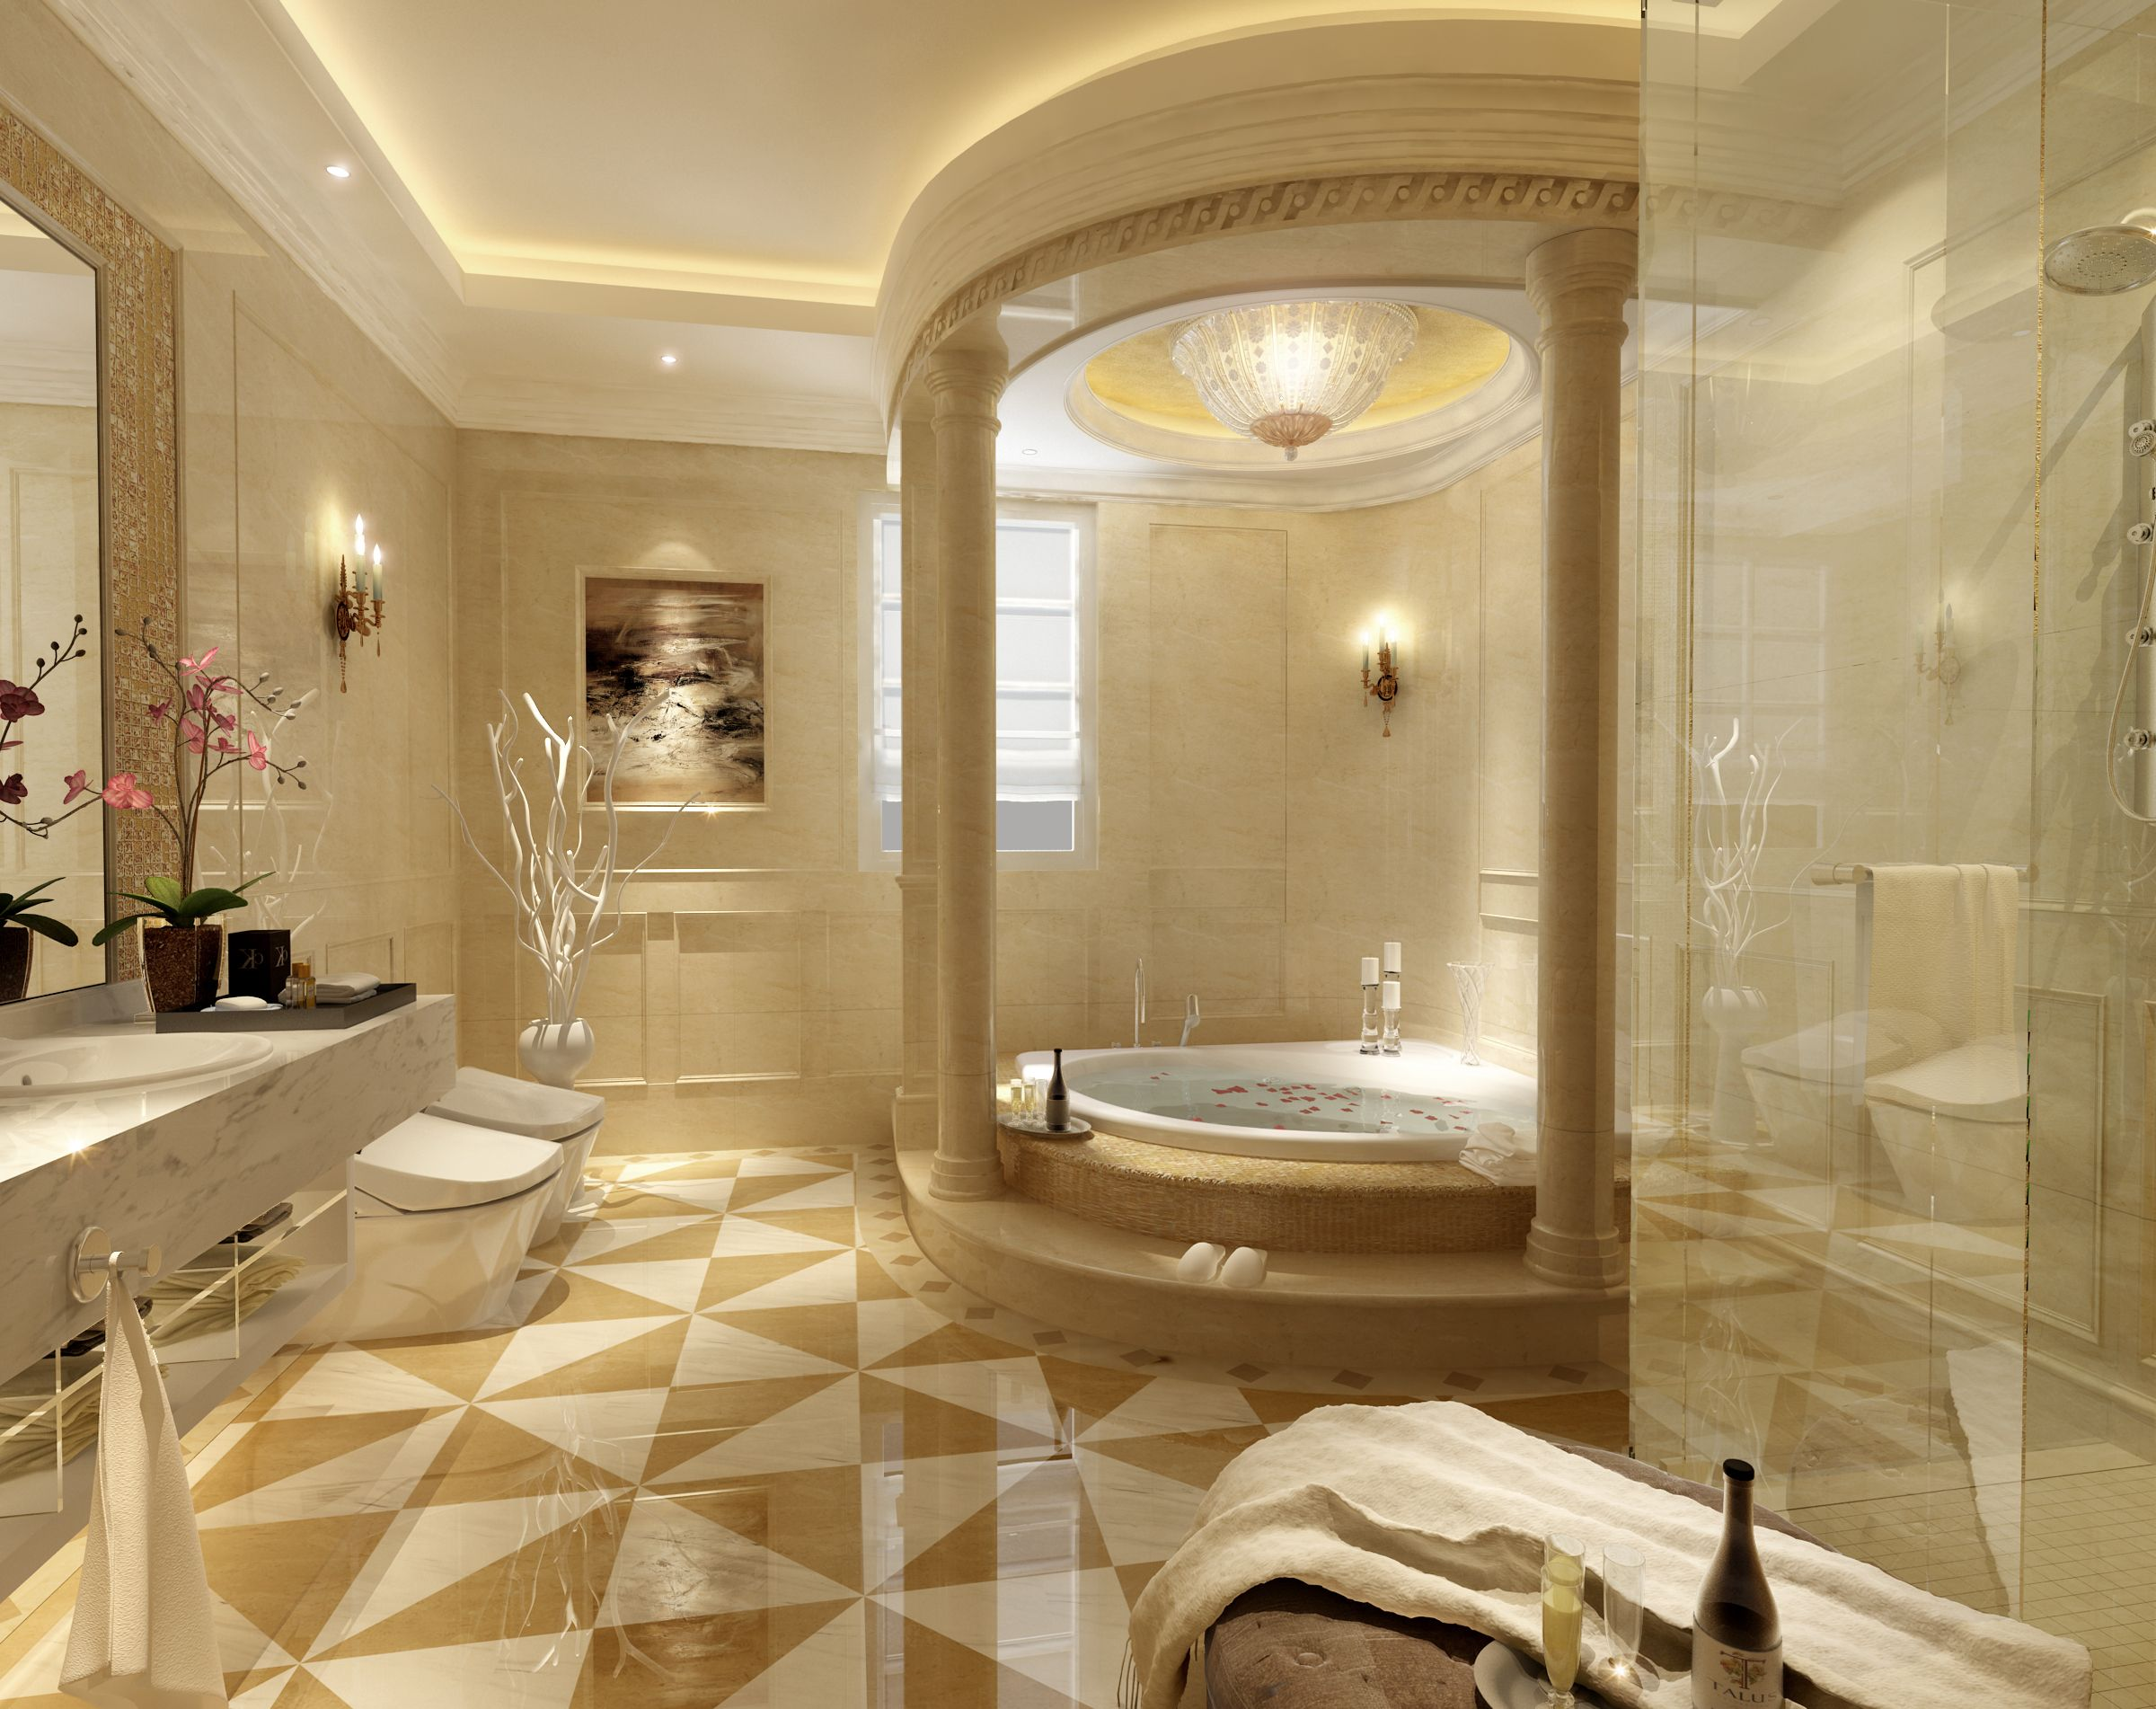 55 amazing luxury bathroom designs relax and enjoy a - Beautiful modern bathroom designs ...